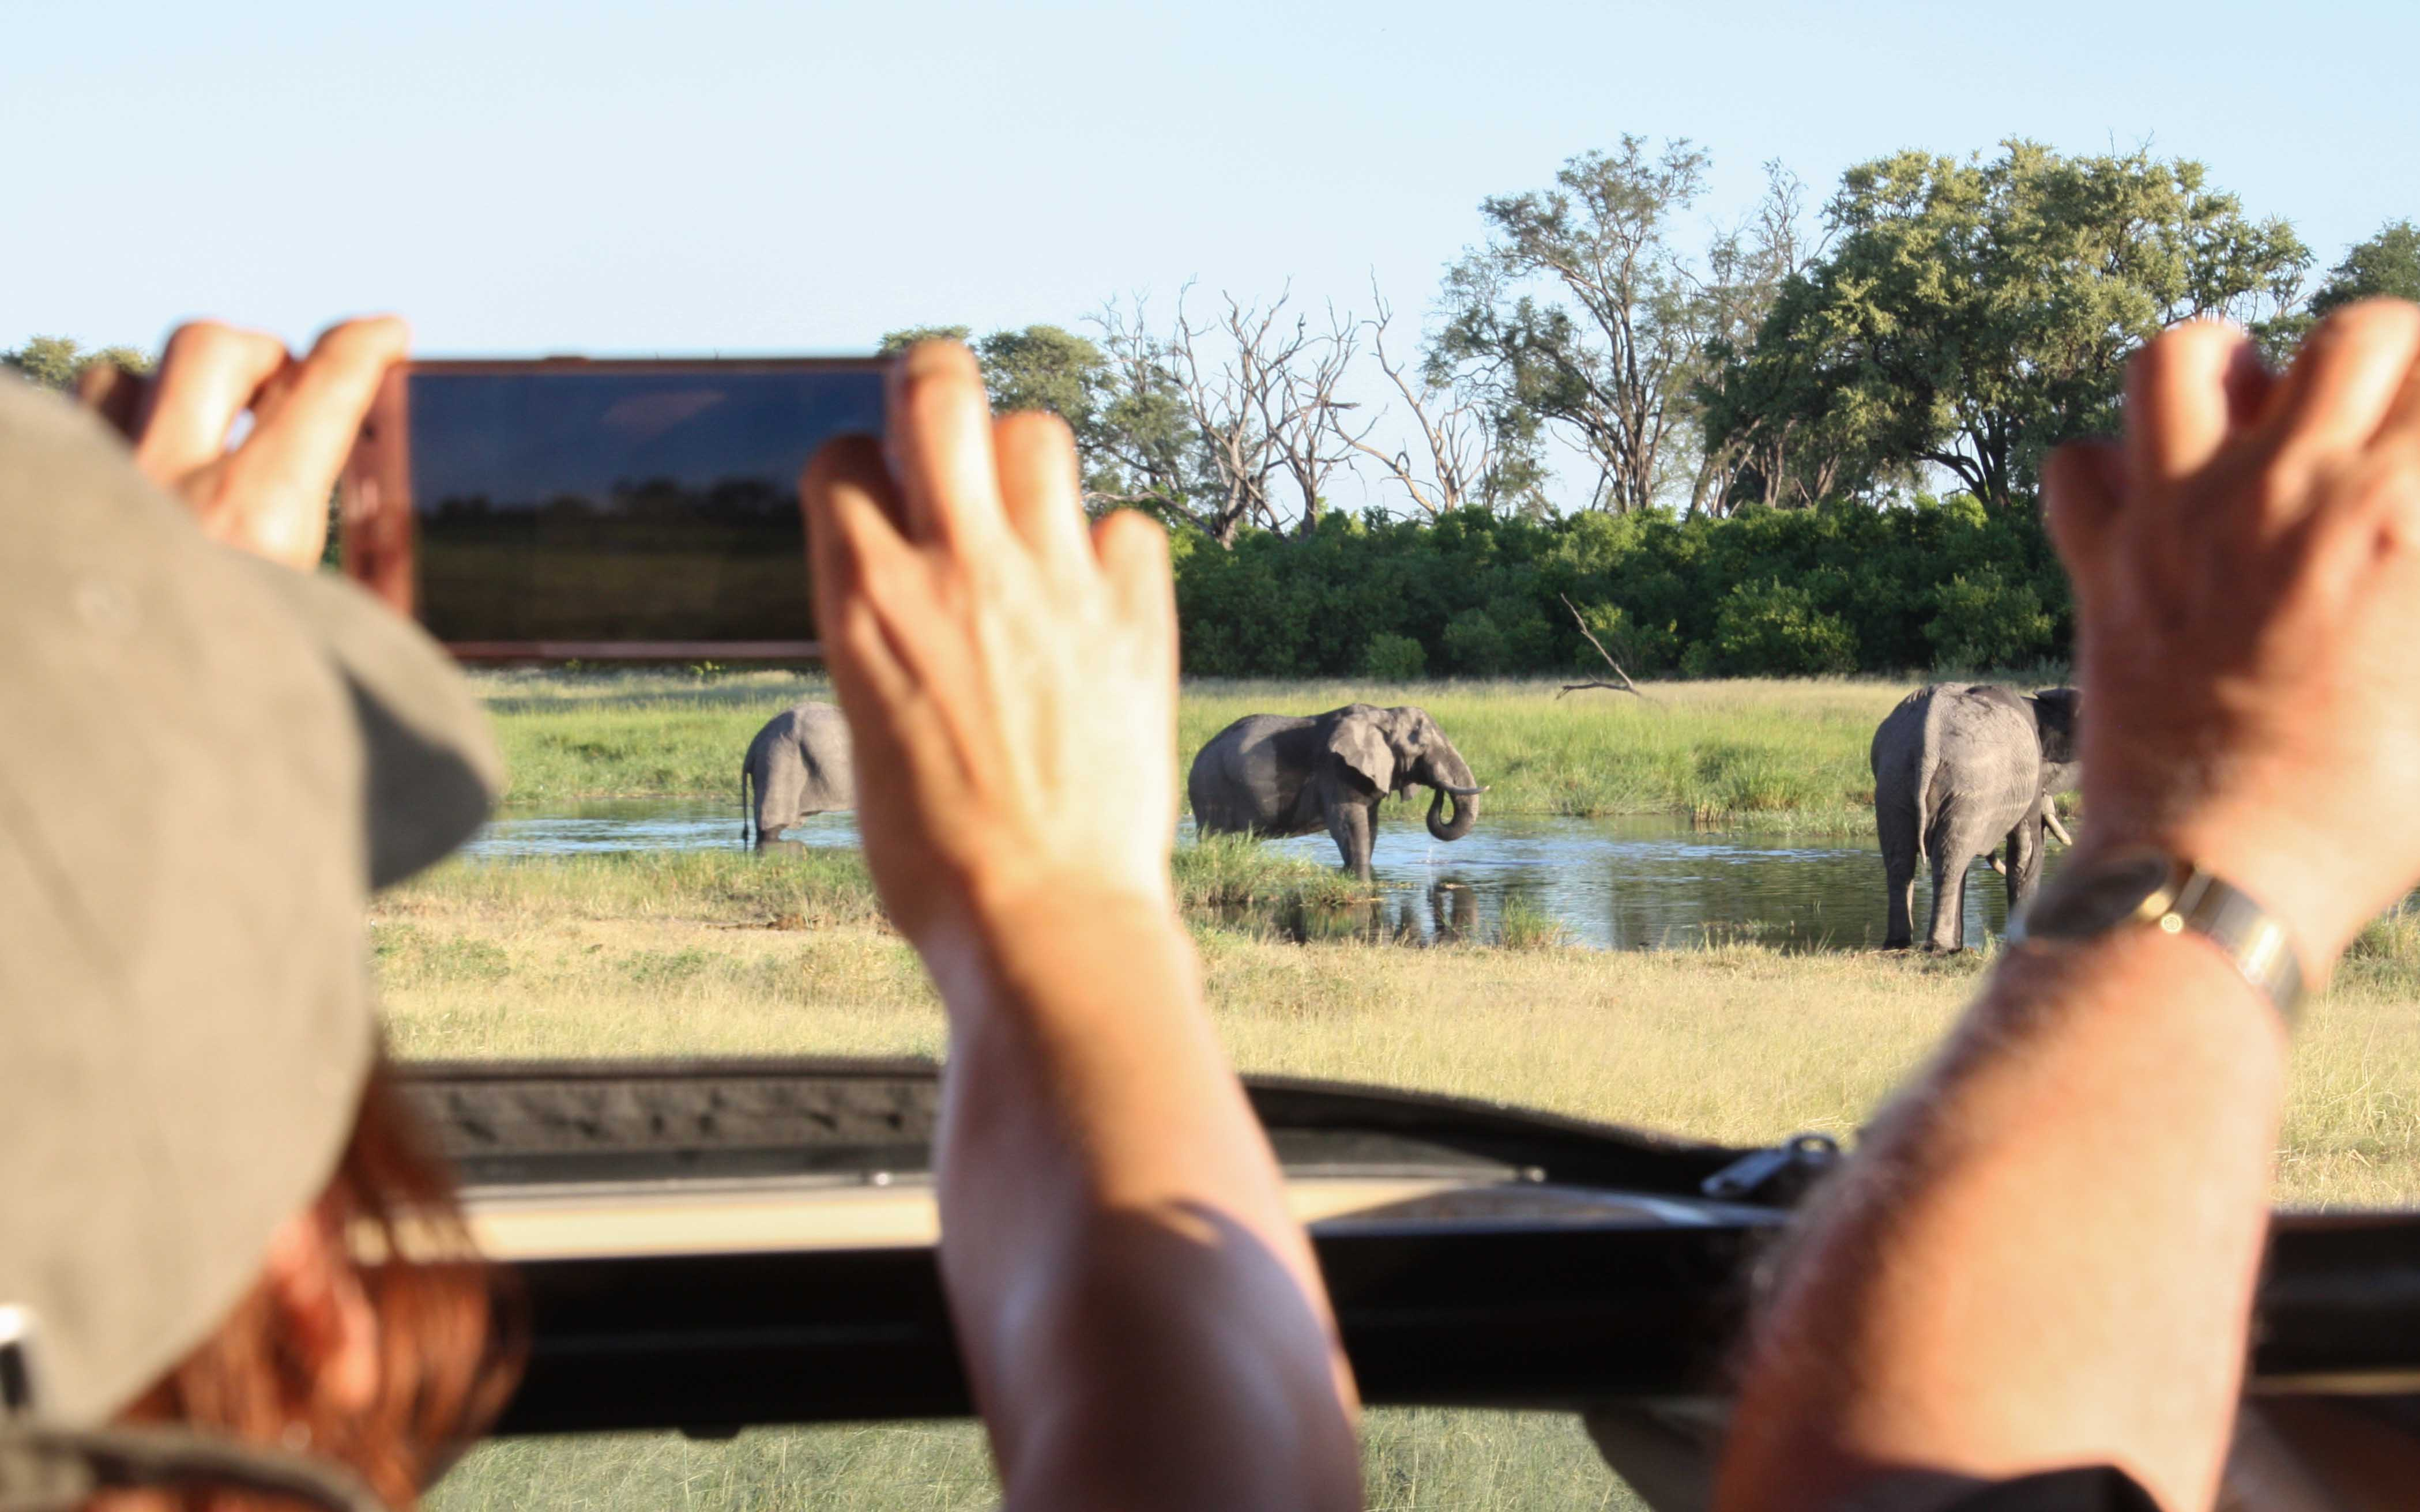 Guests photographing the wildlife of Botswana on a Safari in Khwai.